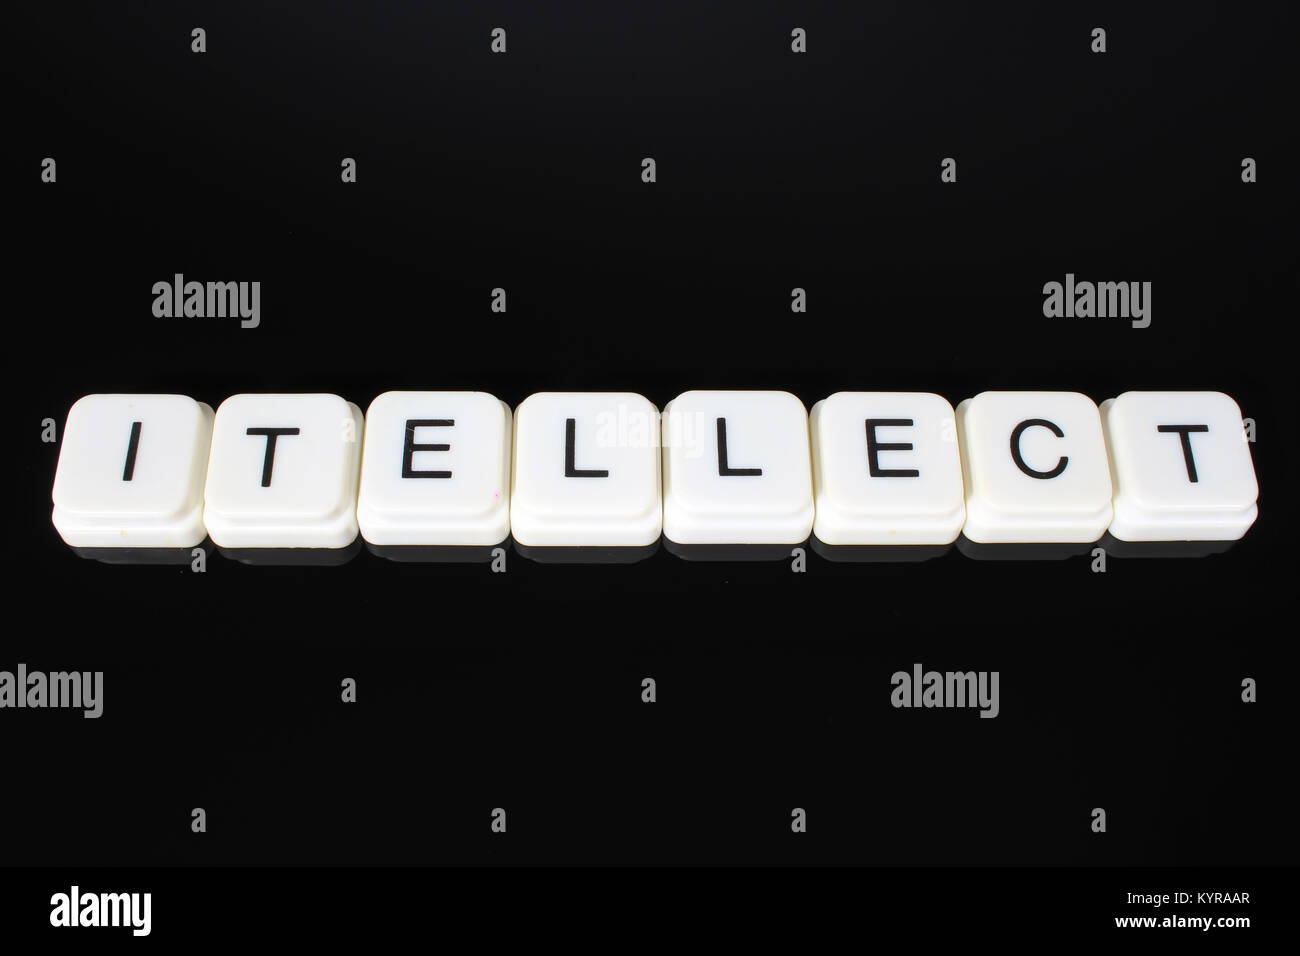 Intellect text word title caption label cover backdrop background. Alphabet letter toy blocks on black reflective - Stock Image